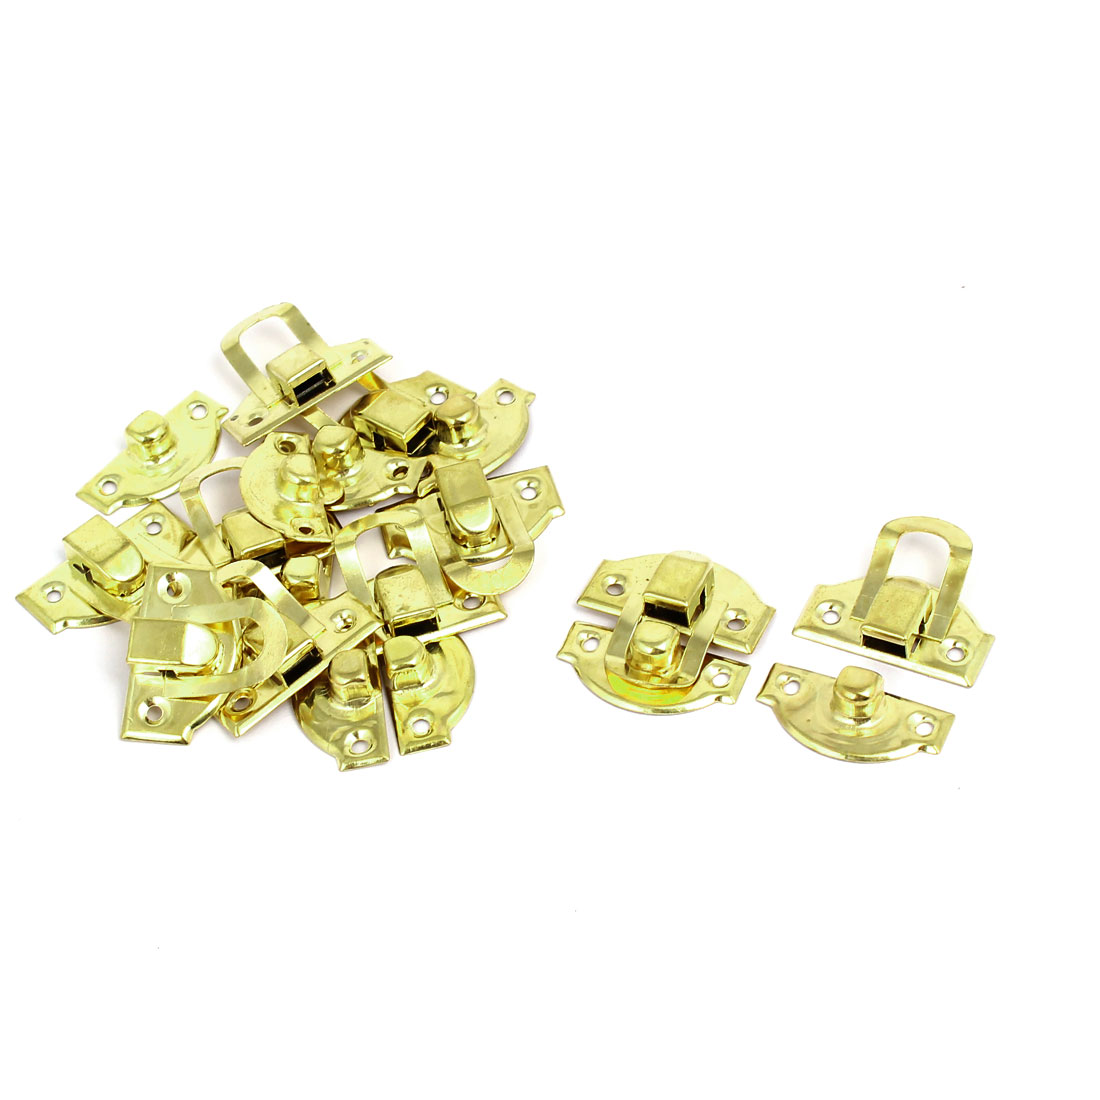 Toolbox Gift Box Buckle Latches Catch Toggle Hasp 29mm x 27mm 10PCS